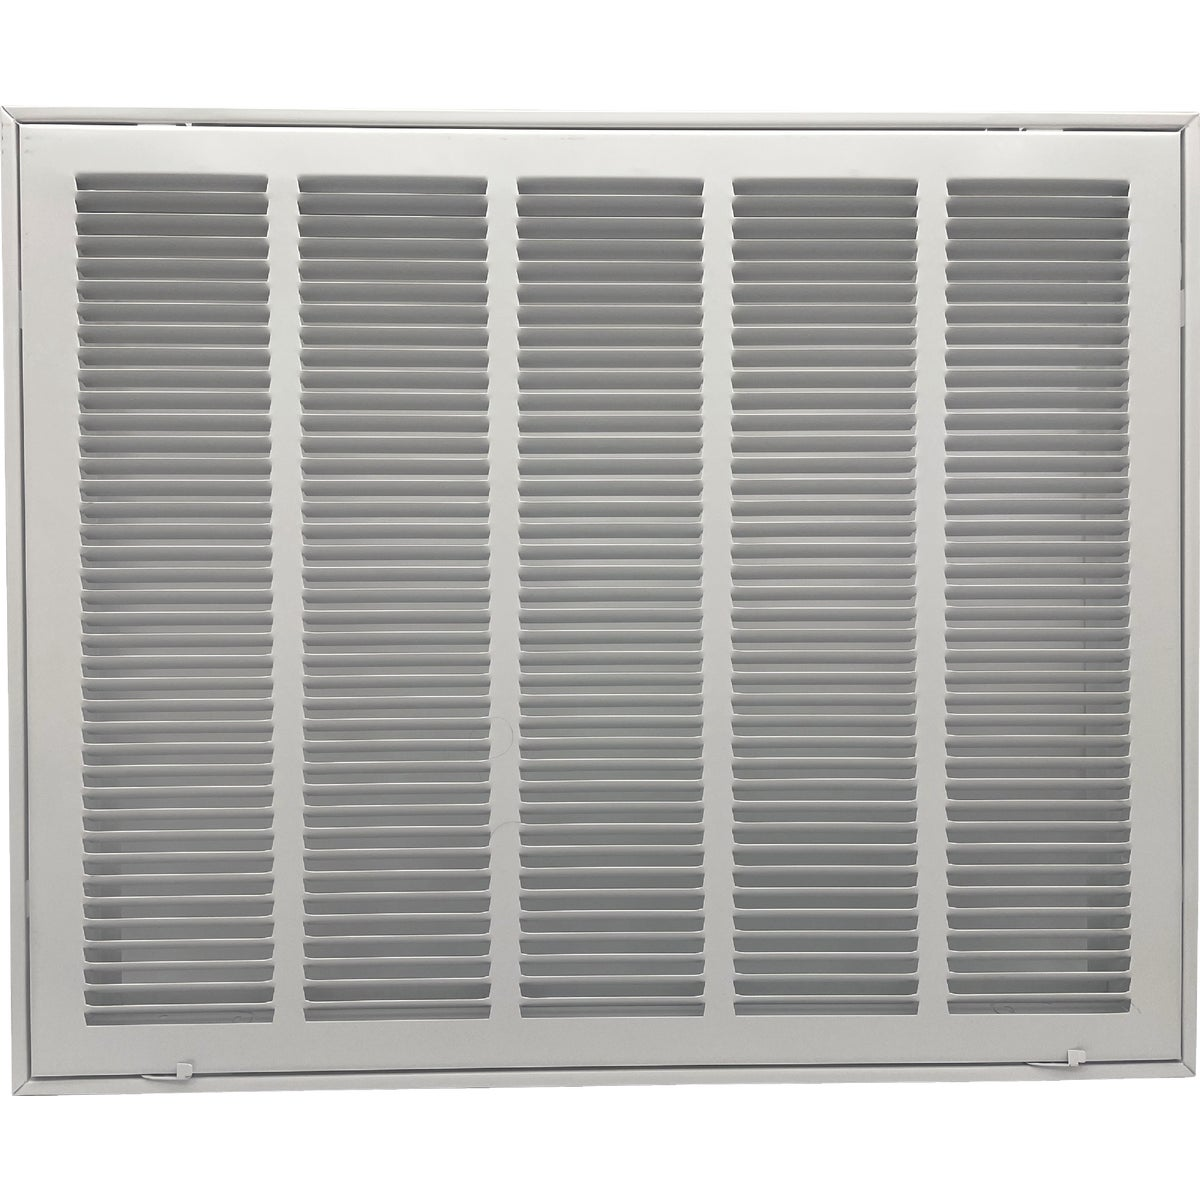 25X20 WH FILTER GRILLE - ABRFWH2520 by Greystone Home Prod